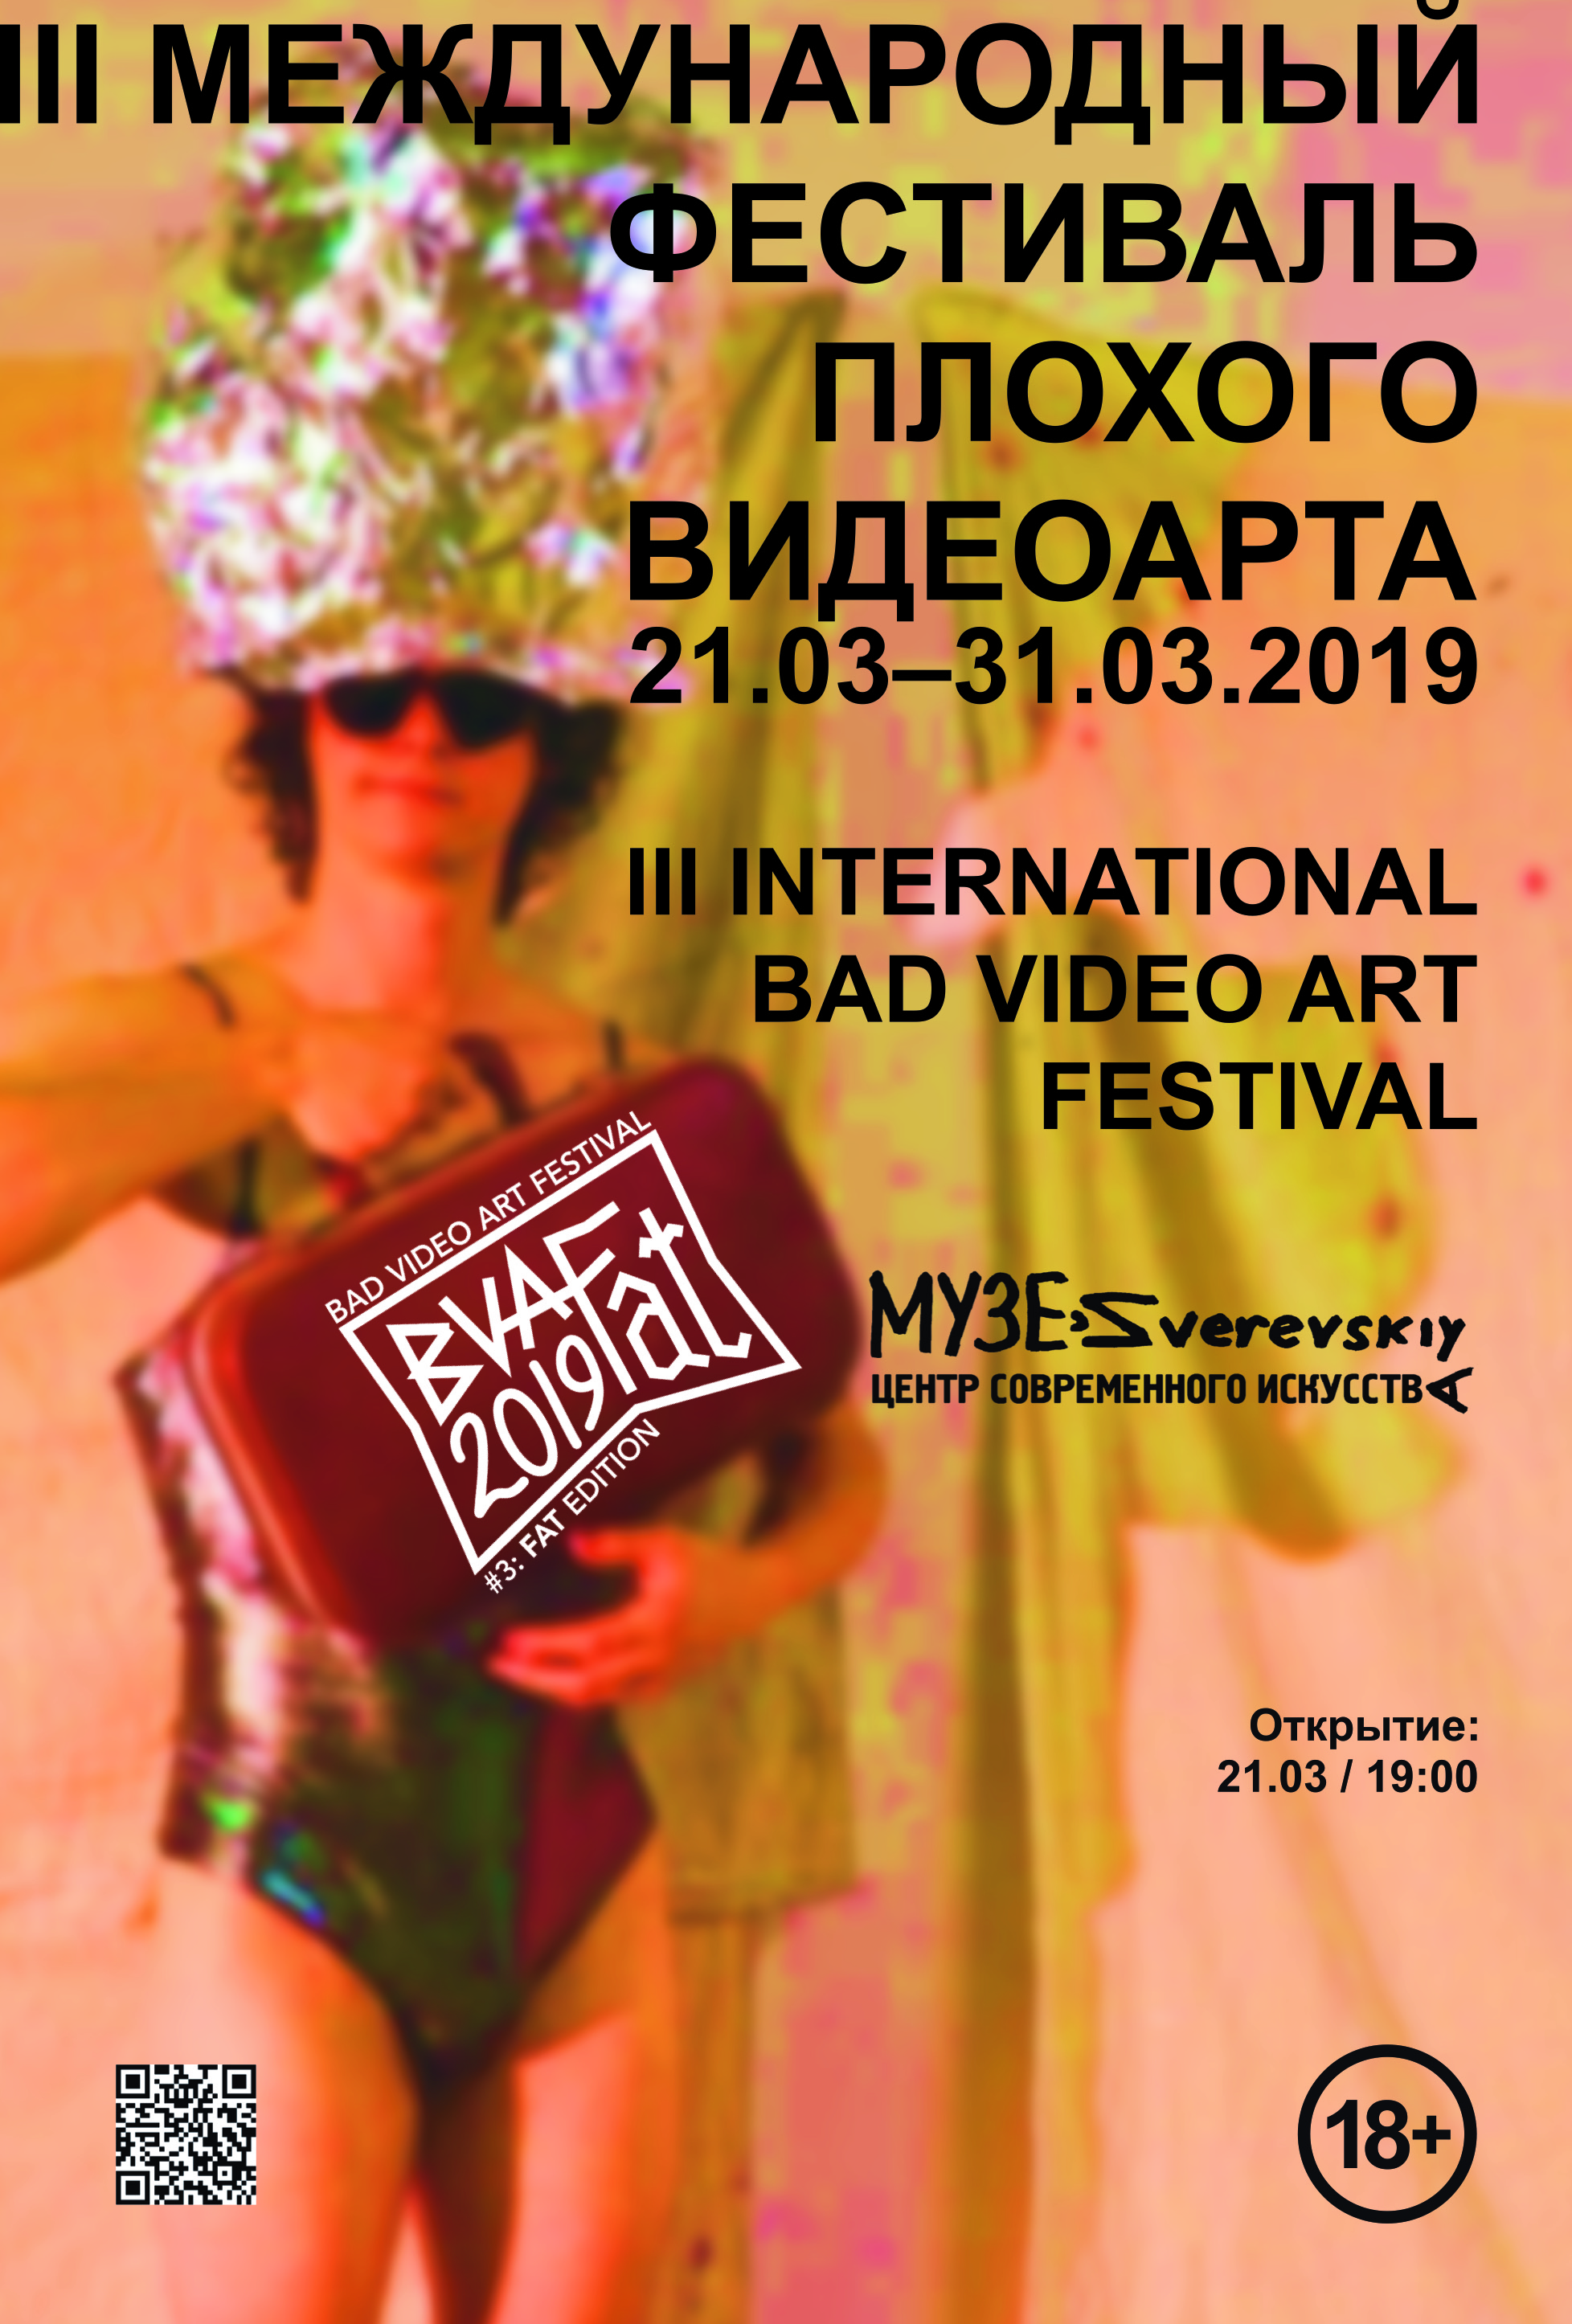 Featured in  International Bad Video Art Festival III , Moscow, Russia 2019.